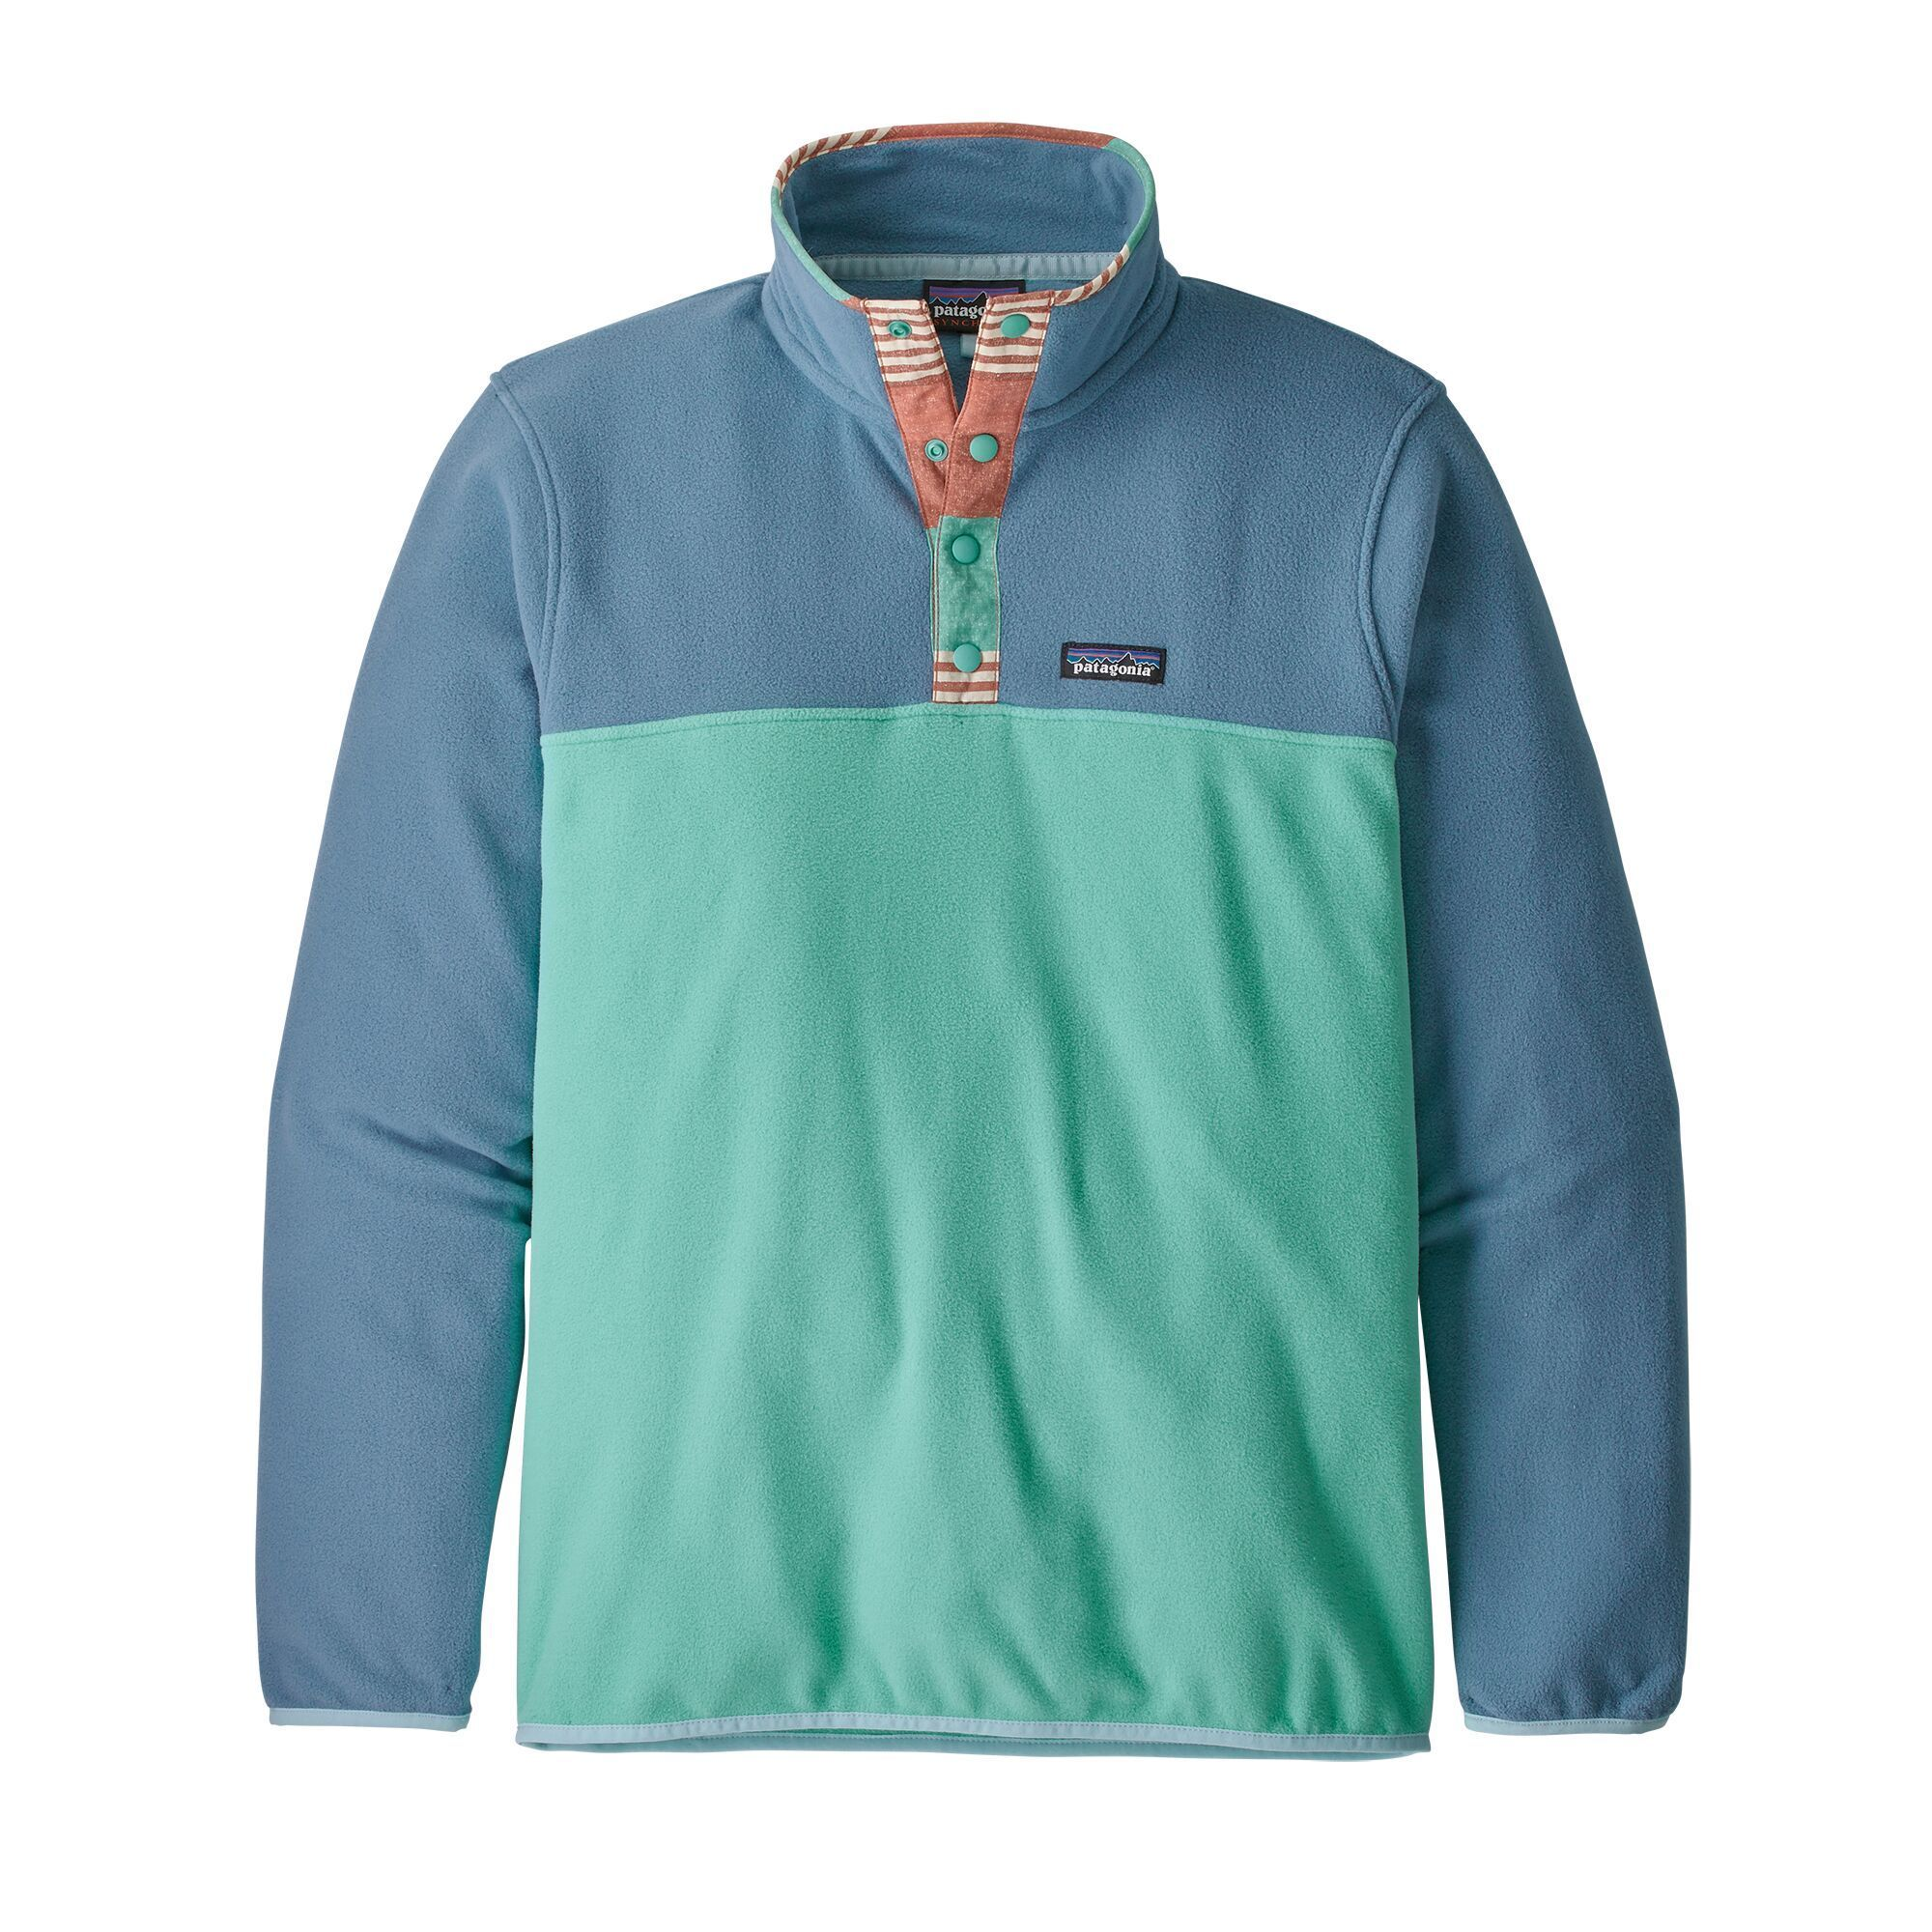 Patagonia - M's Micro D Snap-T Fleece Pullover - 100% Recycled Polyester - Weekendbee - sustainable sportswear